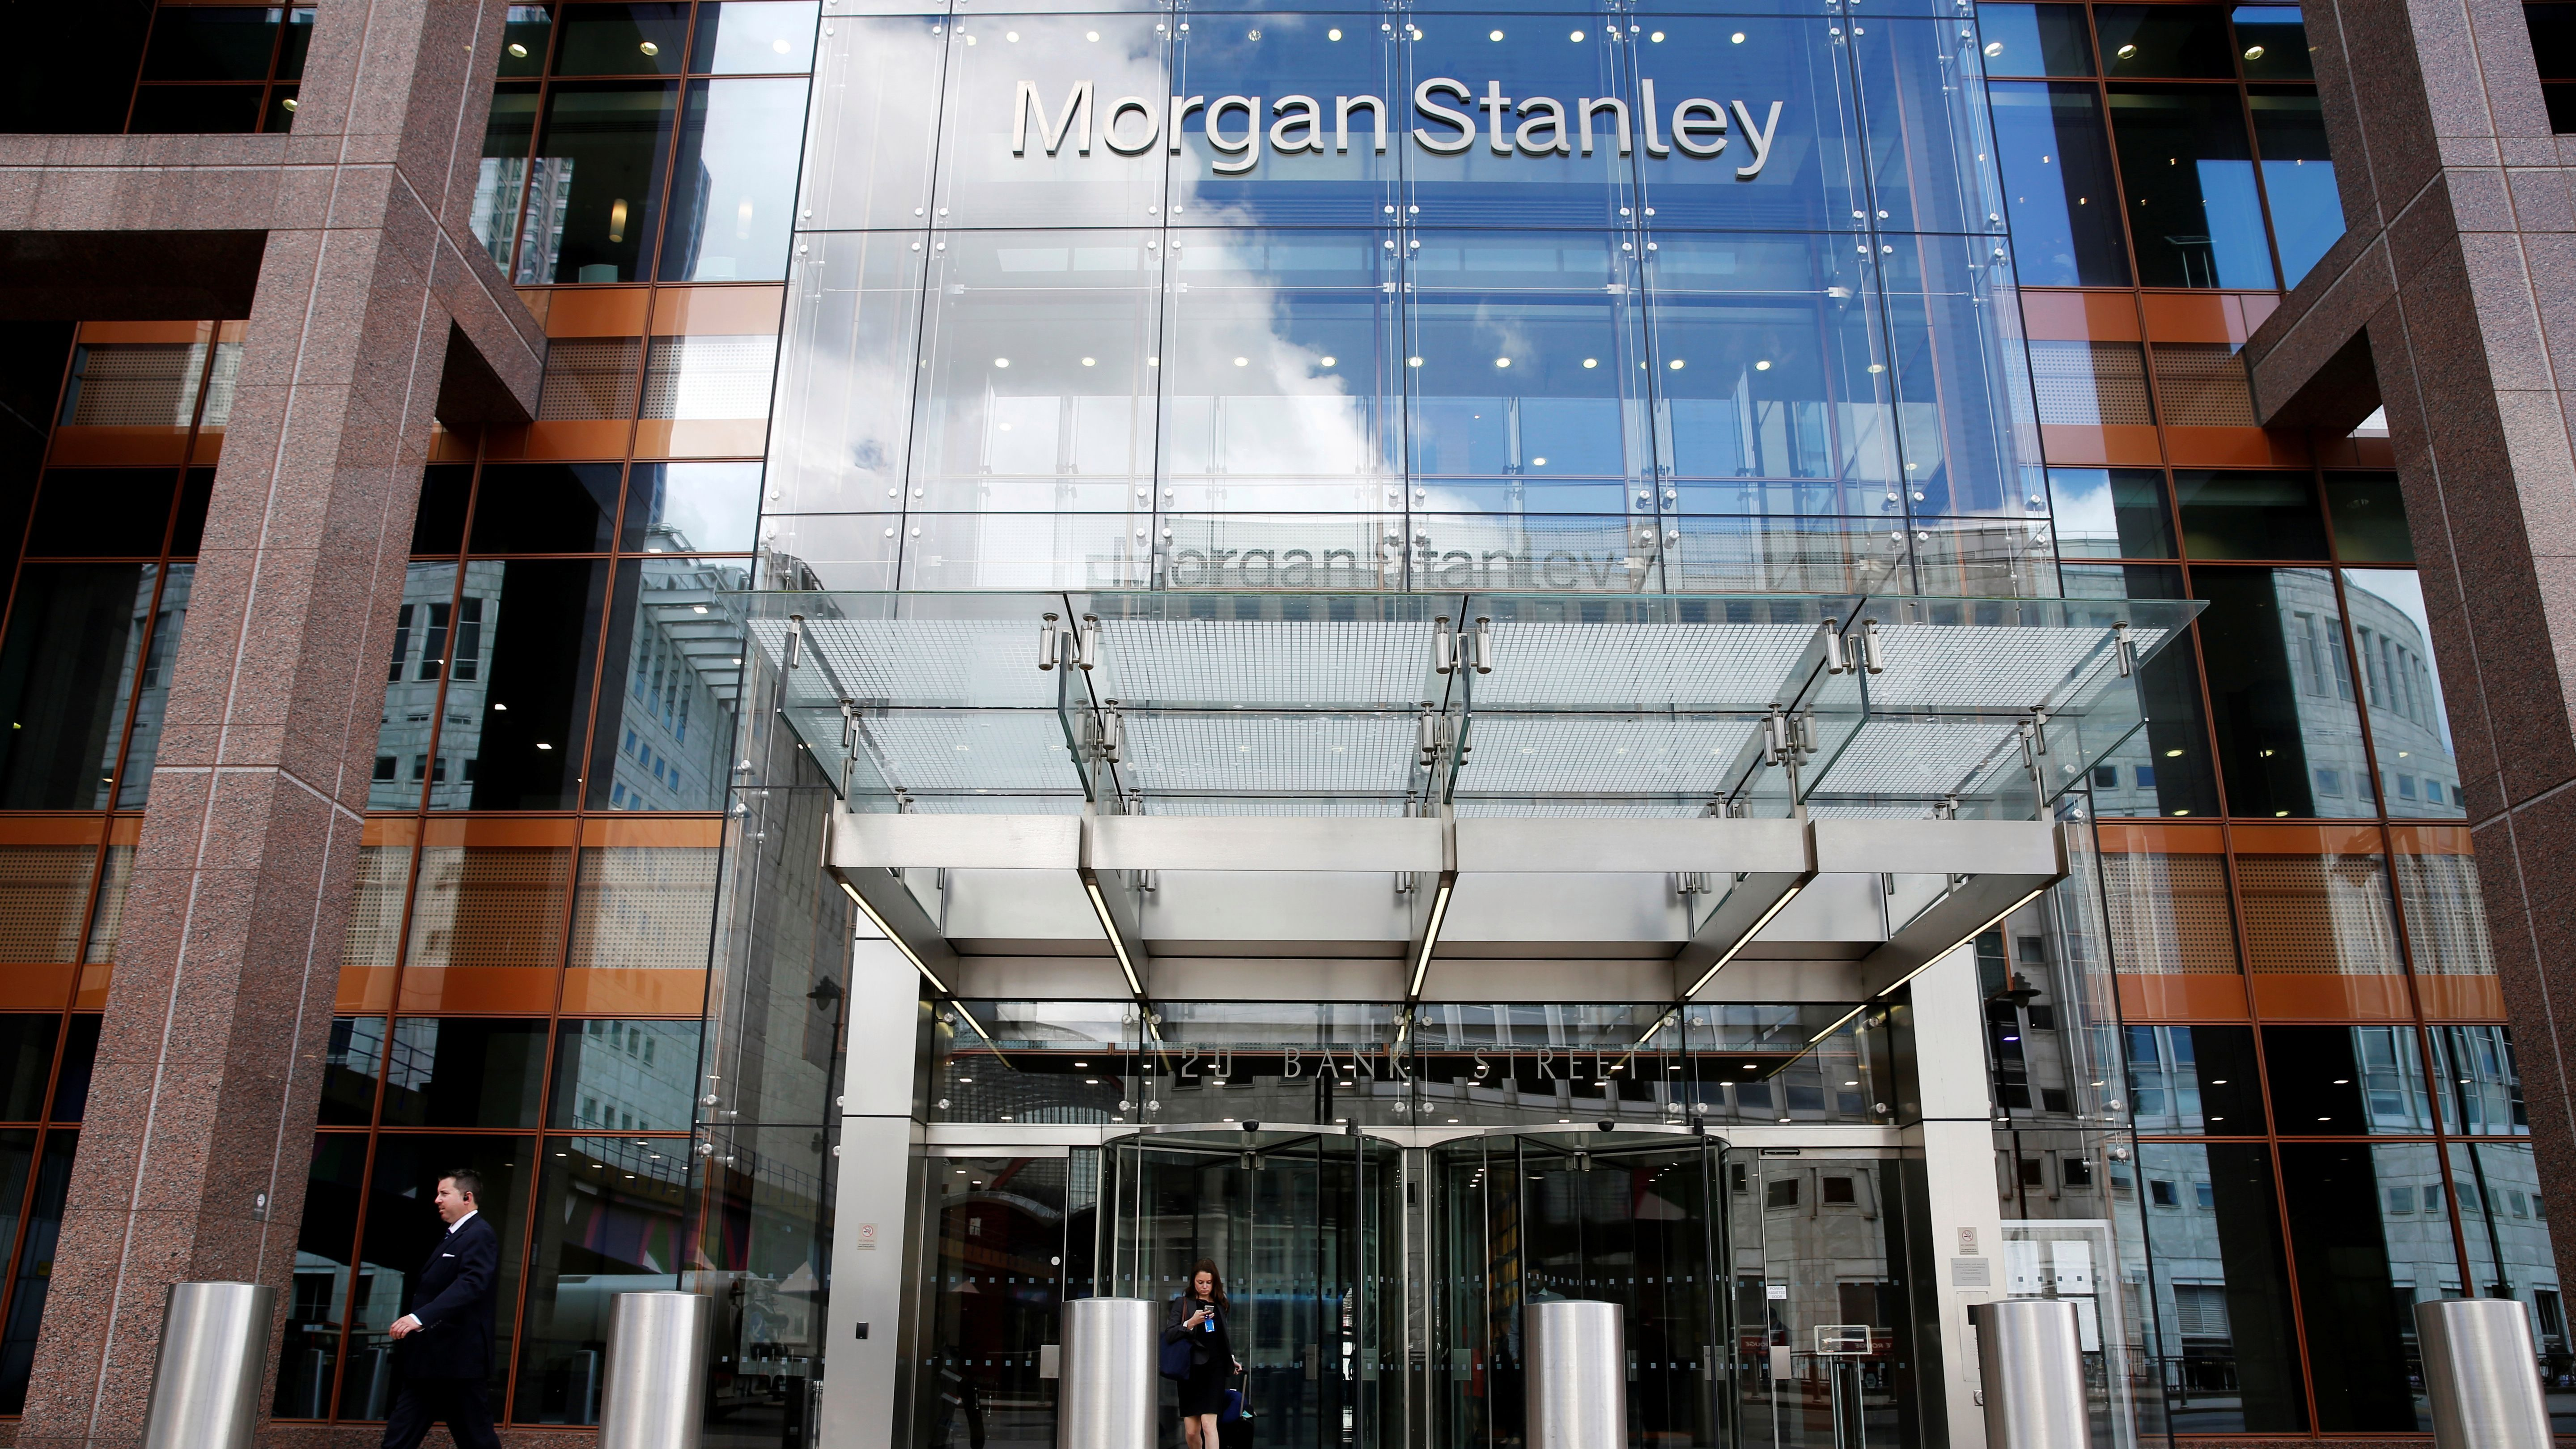 Higher pay and fewer hours: Morgan Stanley captures every workplace